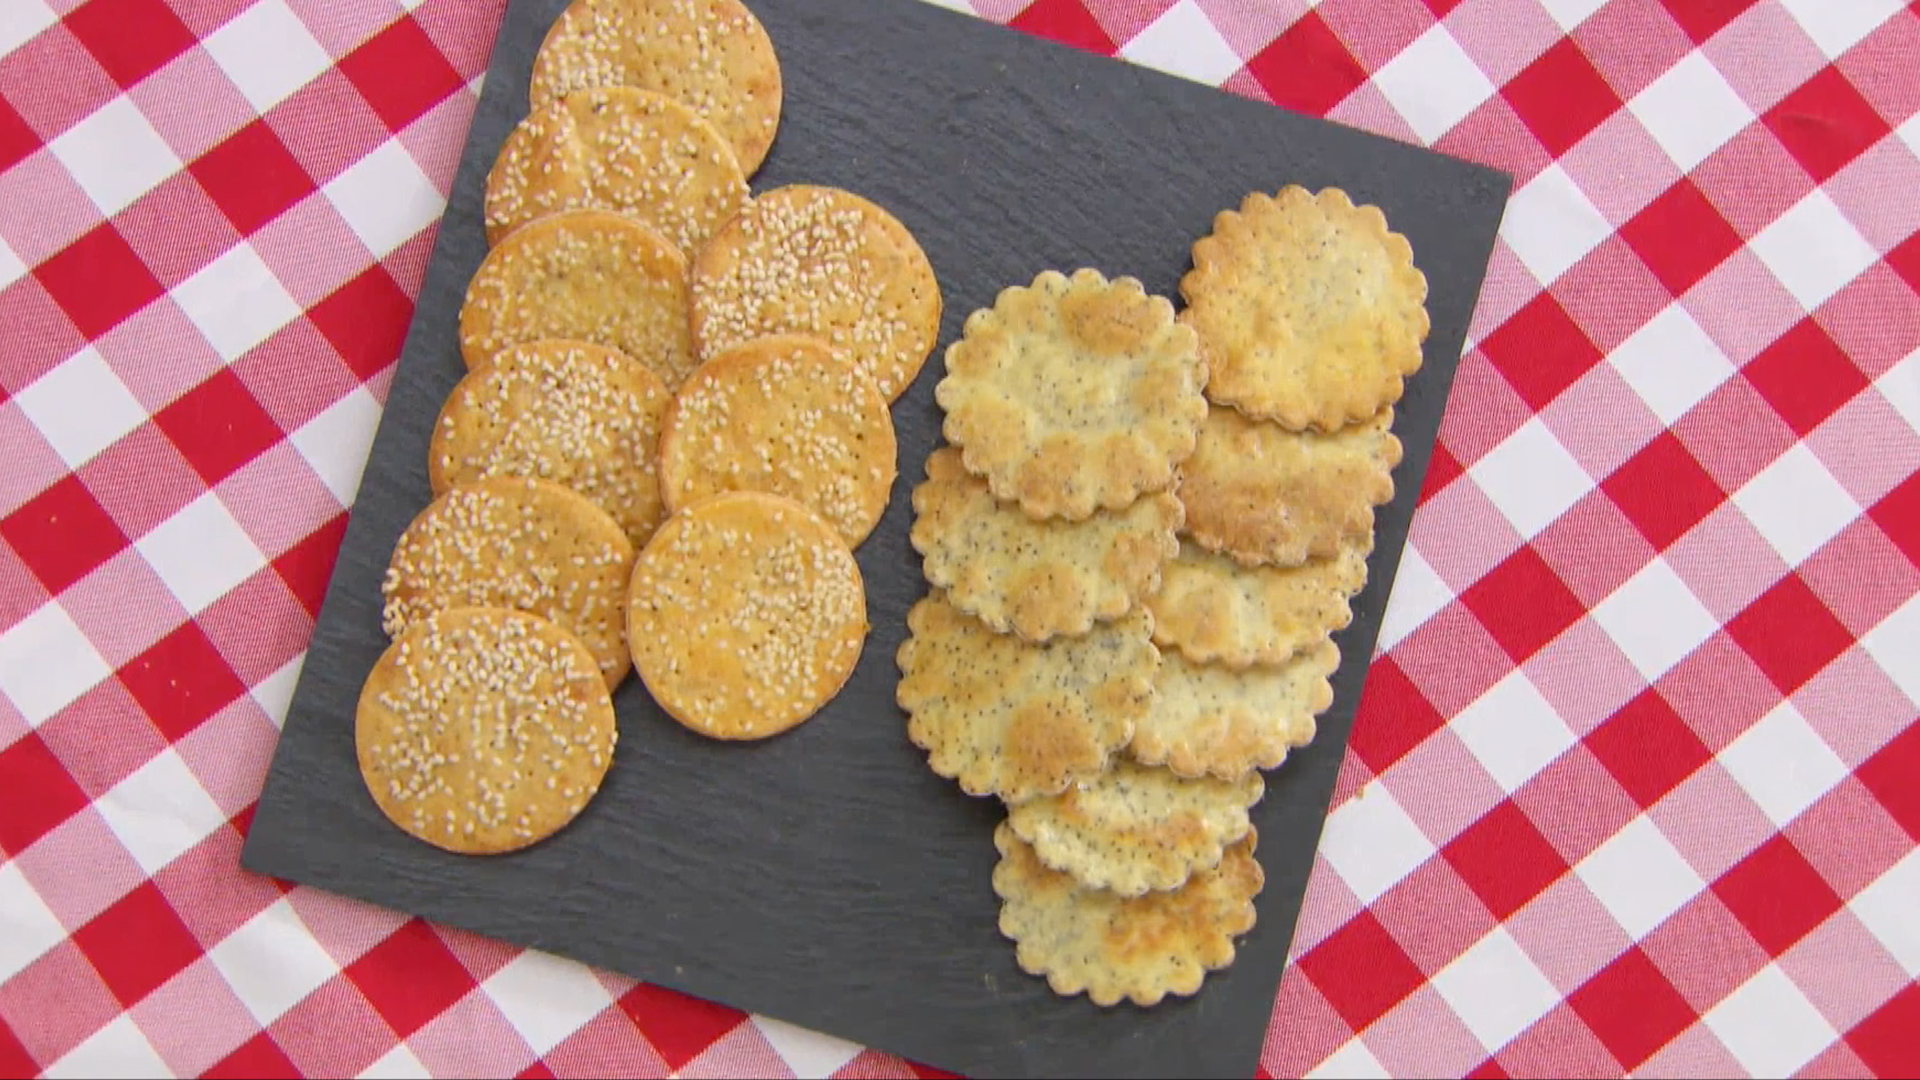 Paul S Savory Biscuits Recipe Pbs Food